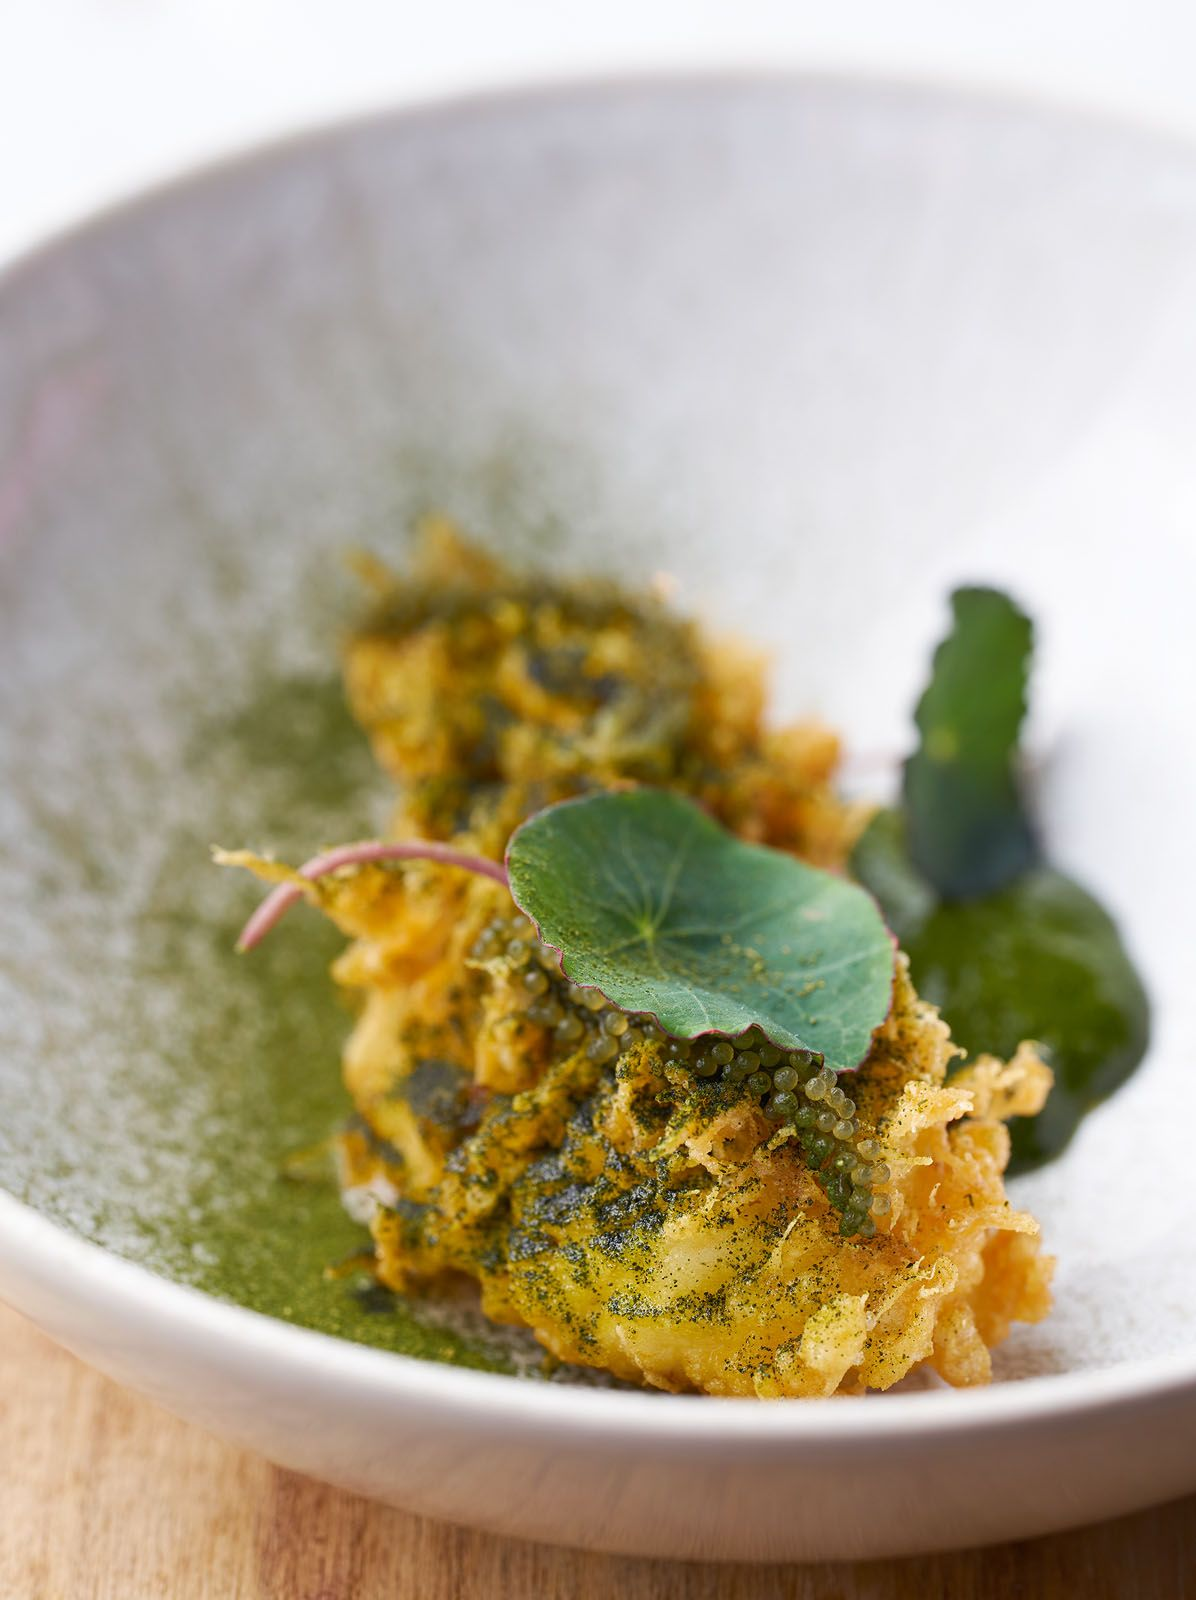 Local wild caught crayfish, dipped in batter, deep-fried and served with Victorian nasturtium puree, from restaurant Labyrinth